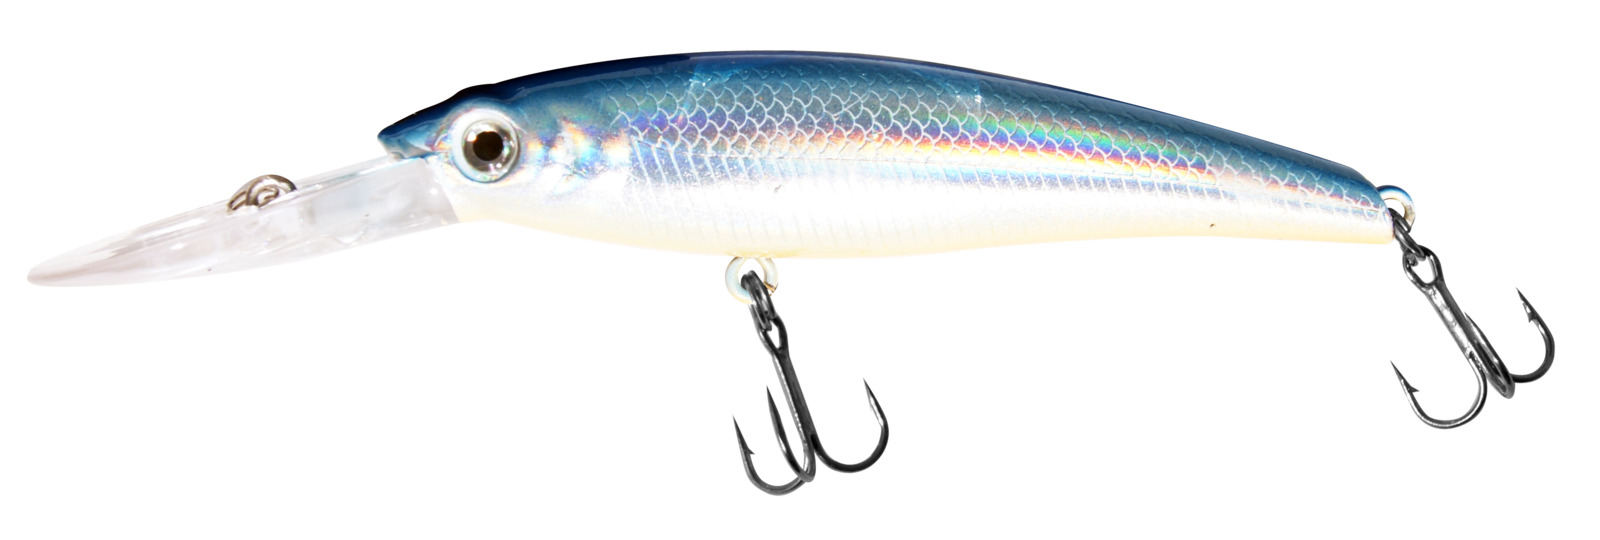 Воблер Siweida Deep Runner Minnow, 0059591, серебристый (07), 140 мм, 50 г